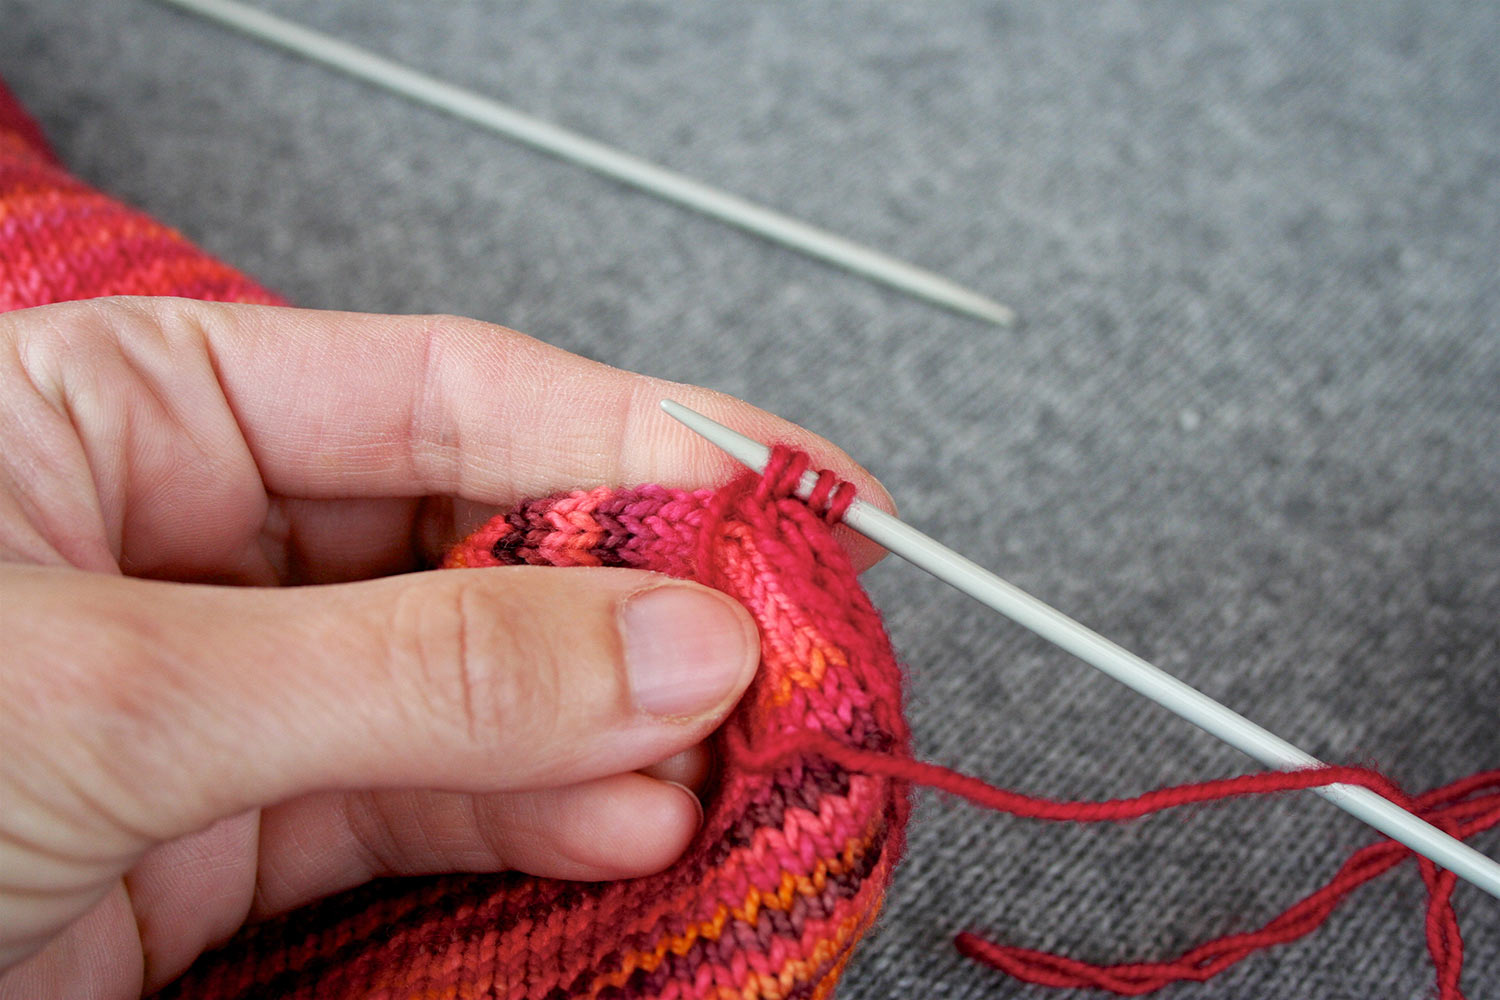 Four stitches on right needle with yarn brought to front and held in place by thumb of left hand; empty needle out of focus in background.